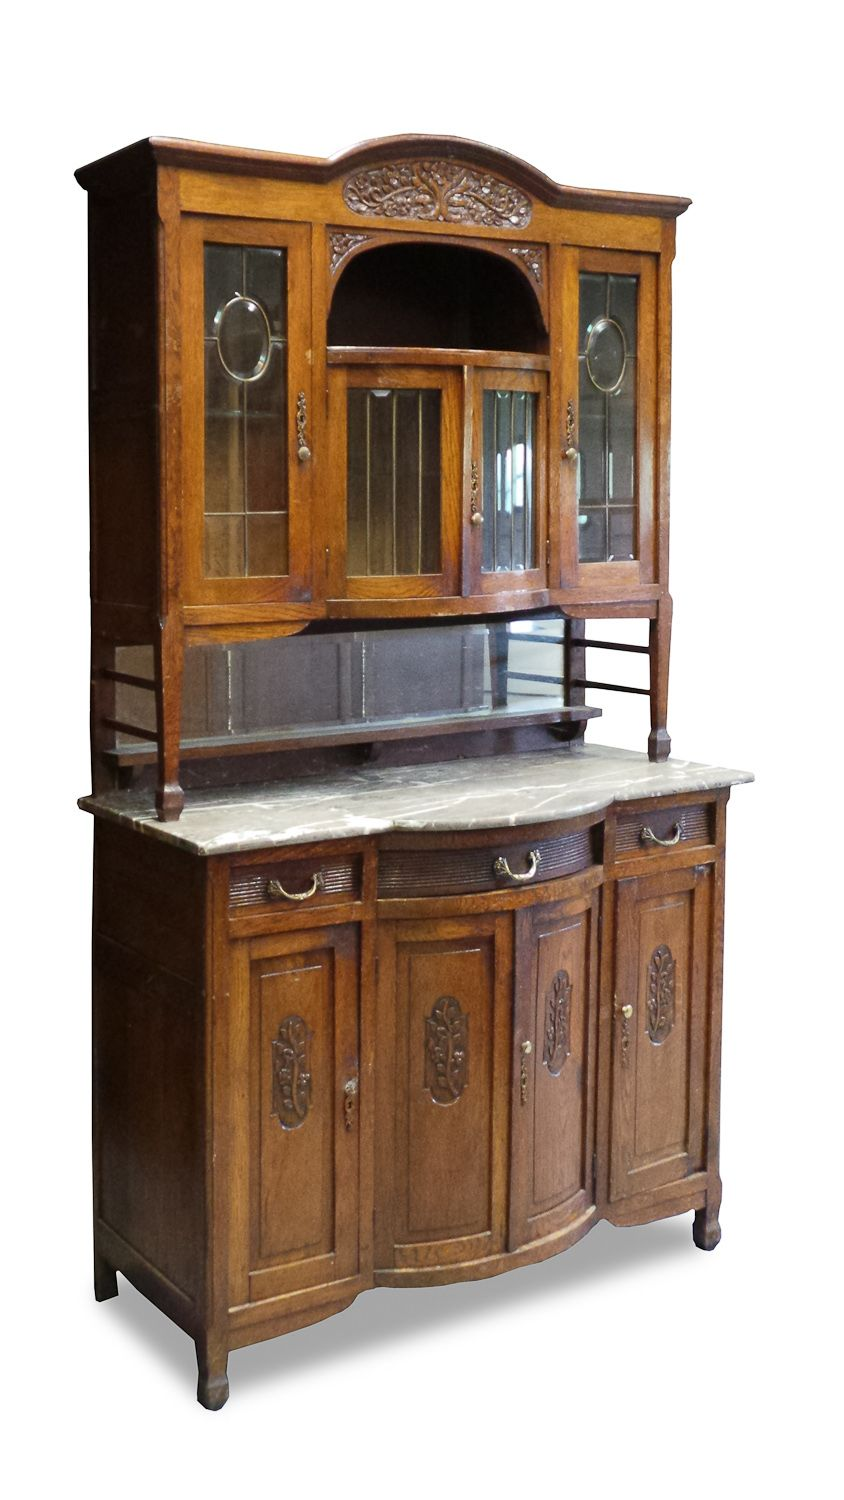 Quality Antique Furniture from Europe, visit our store in Semarang Indonesia - Bifet Antik Eropa European Antiques Asia Antiques Pinterest